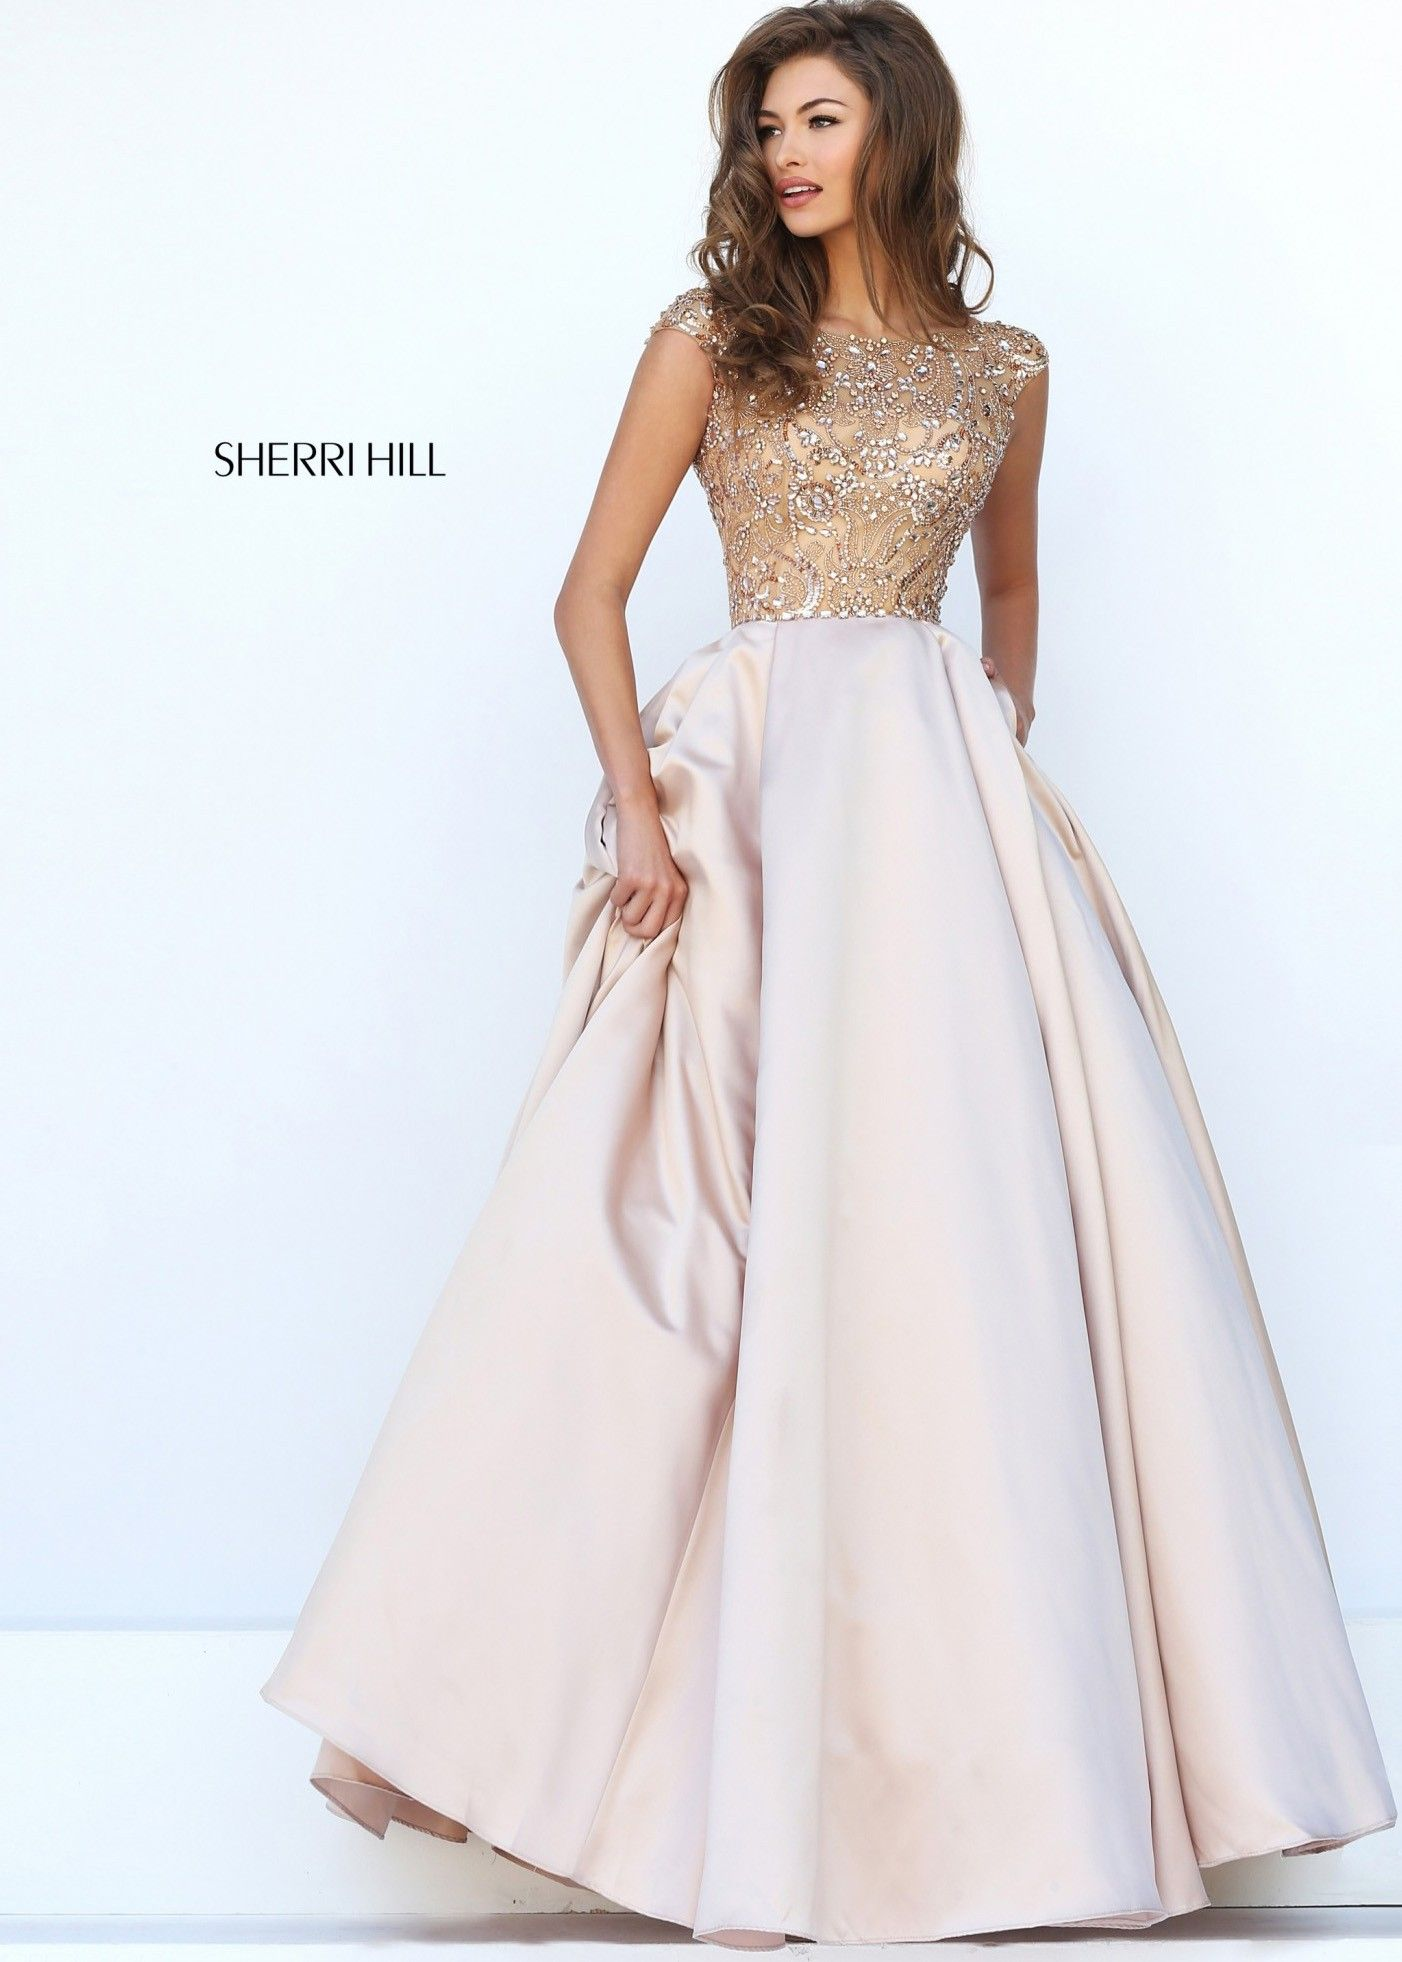 Sherri Hill 32359 Vibrant Cap Sleeve Evening Gown   Gowns, Cap and ...